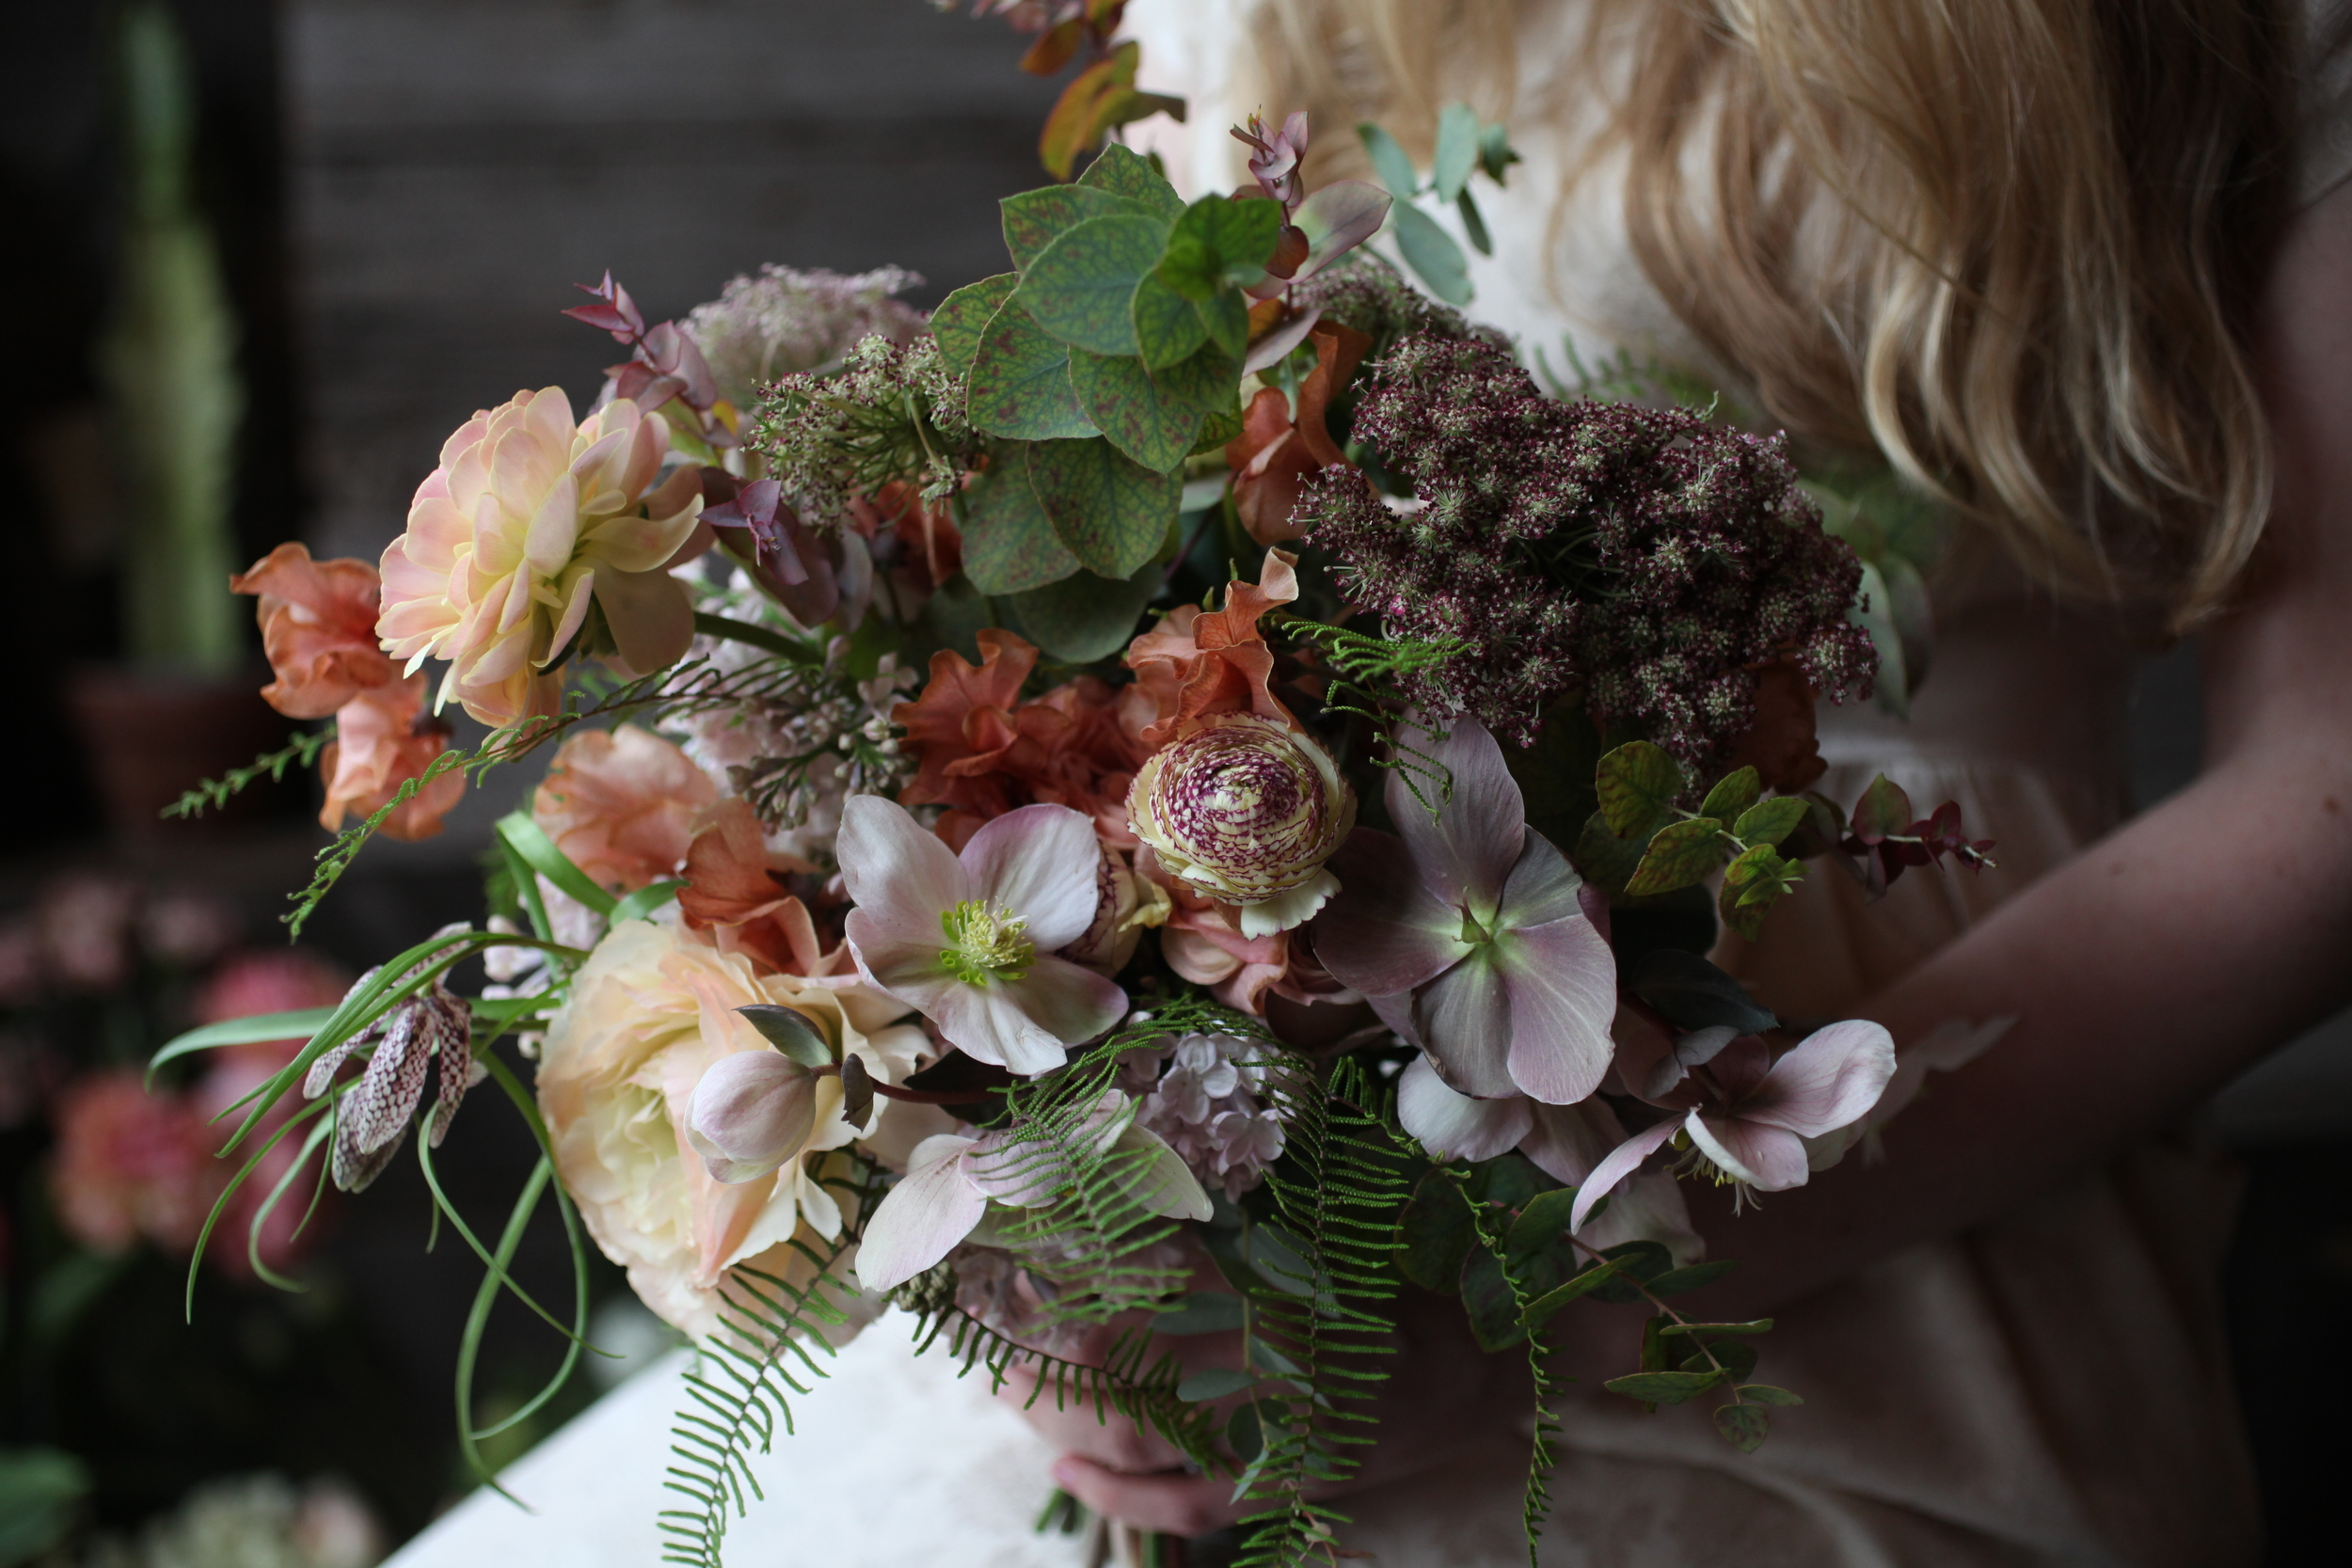 I created this bouquet during a bouquet workshop at Little Flower School in New York. I think the way that Sarah Ryhanen captures flowers in photos is truly special. I'd love to learn how to improve my own skills.